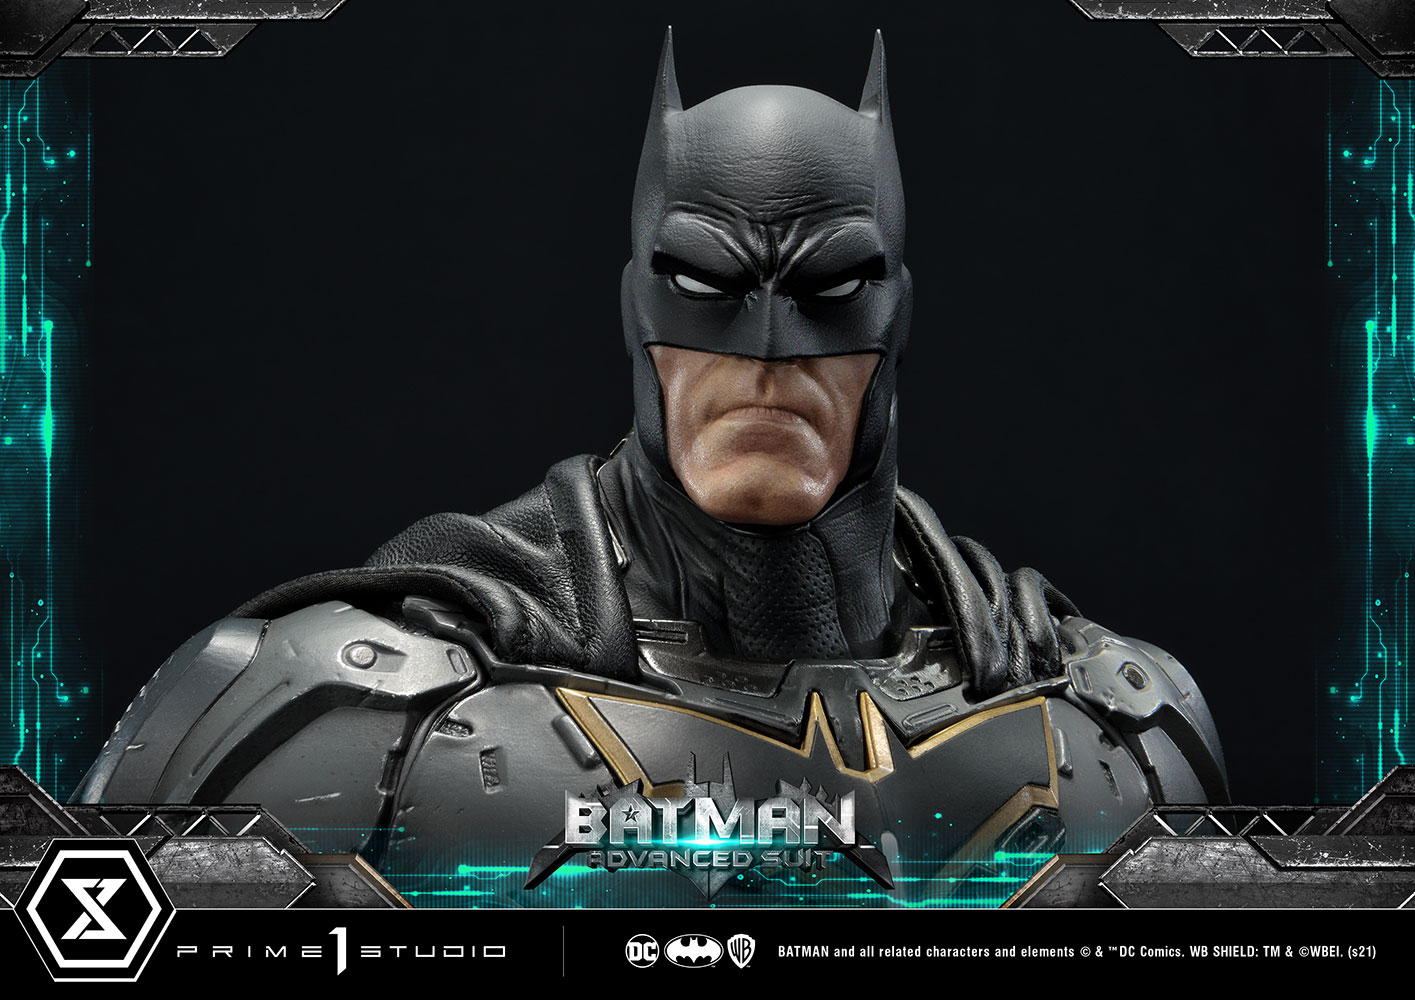 Batman Advanced Suit Prime 1 Studio